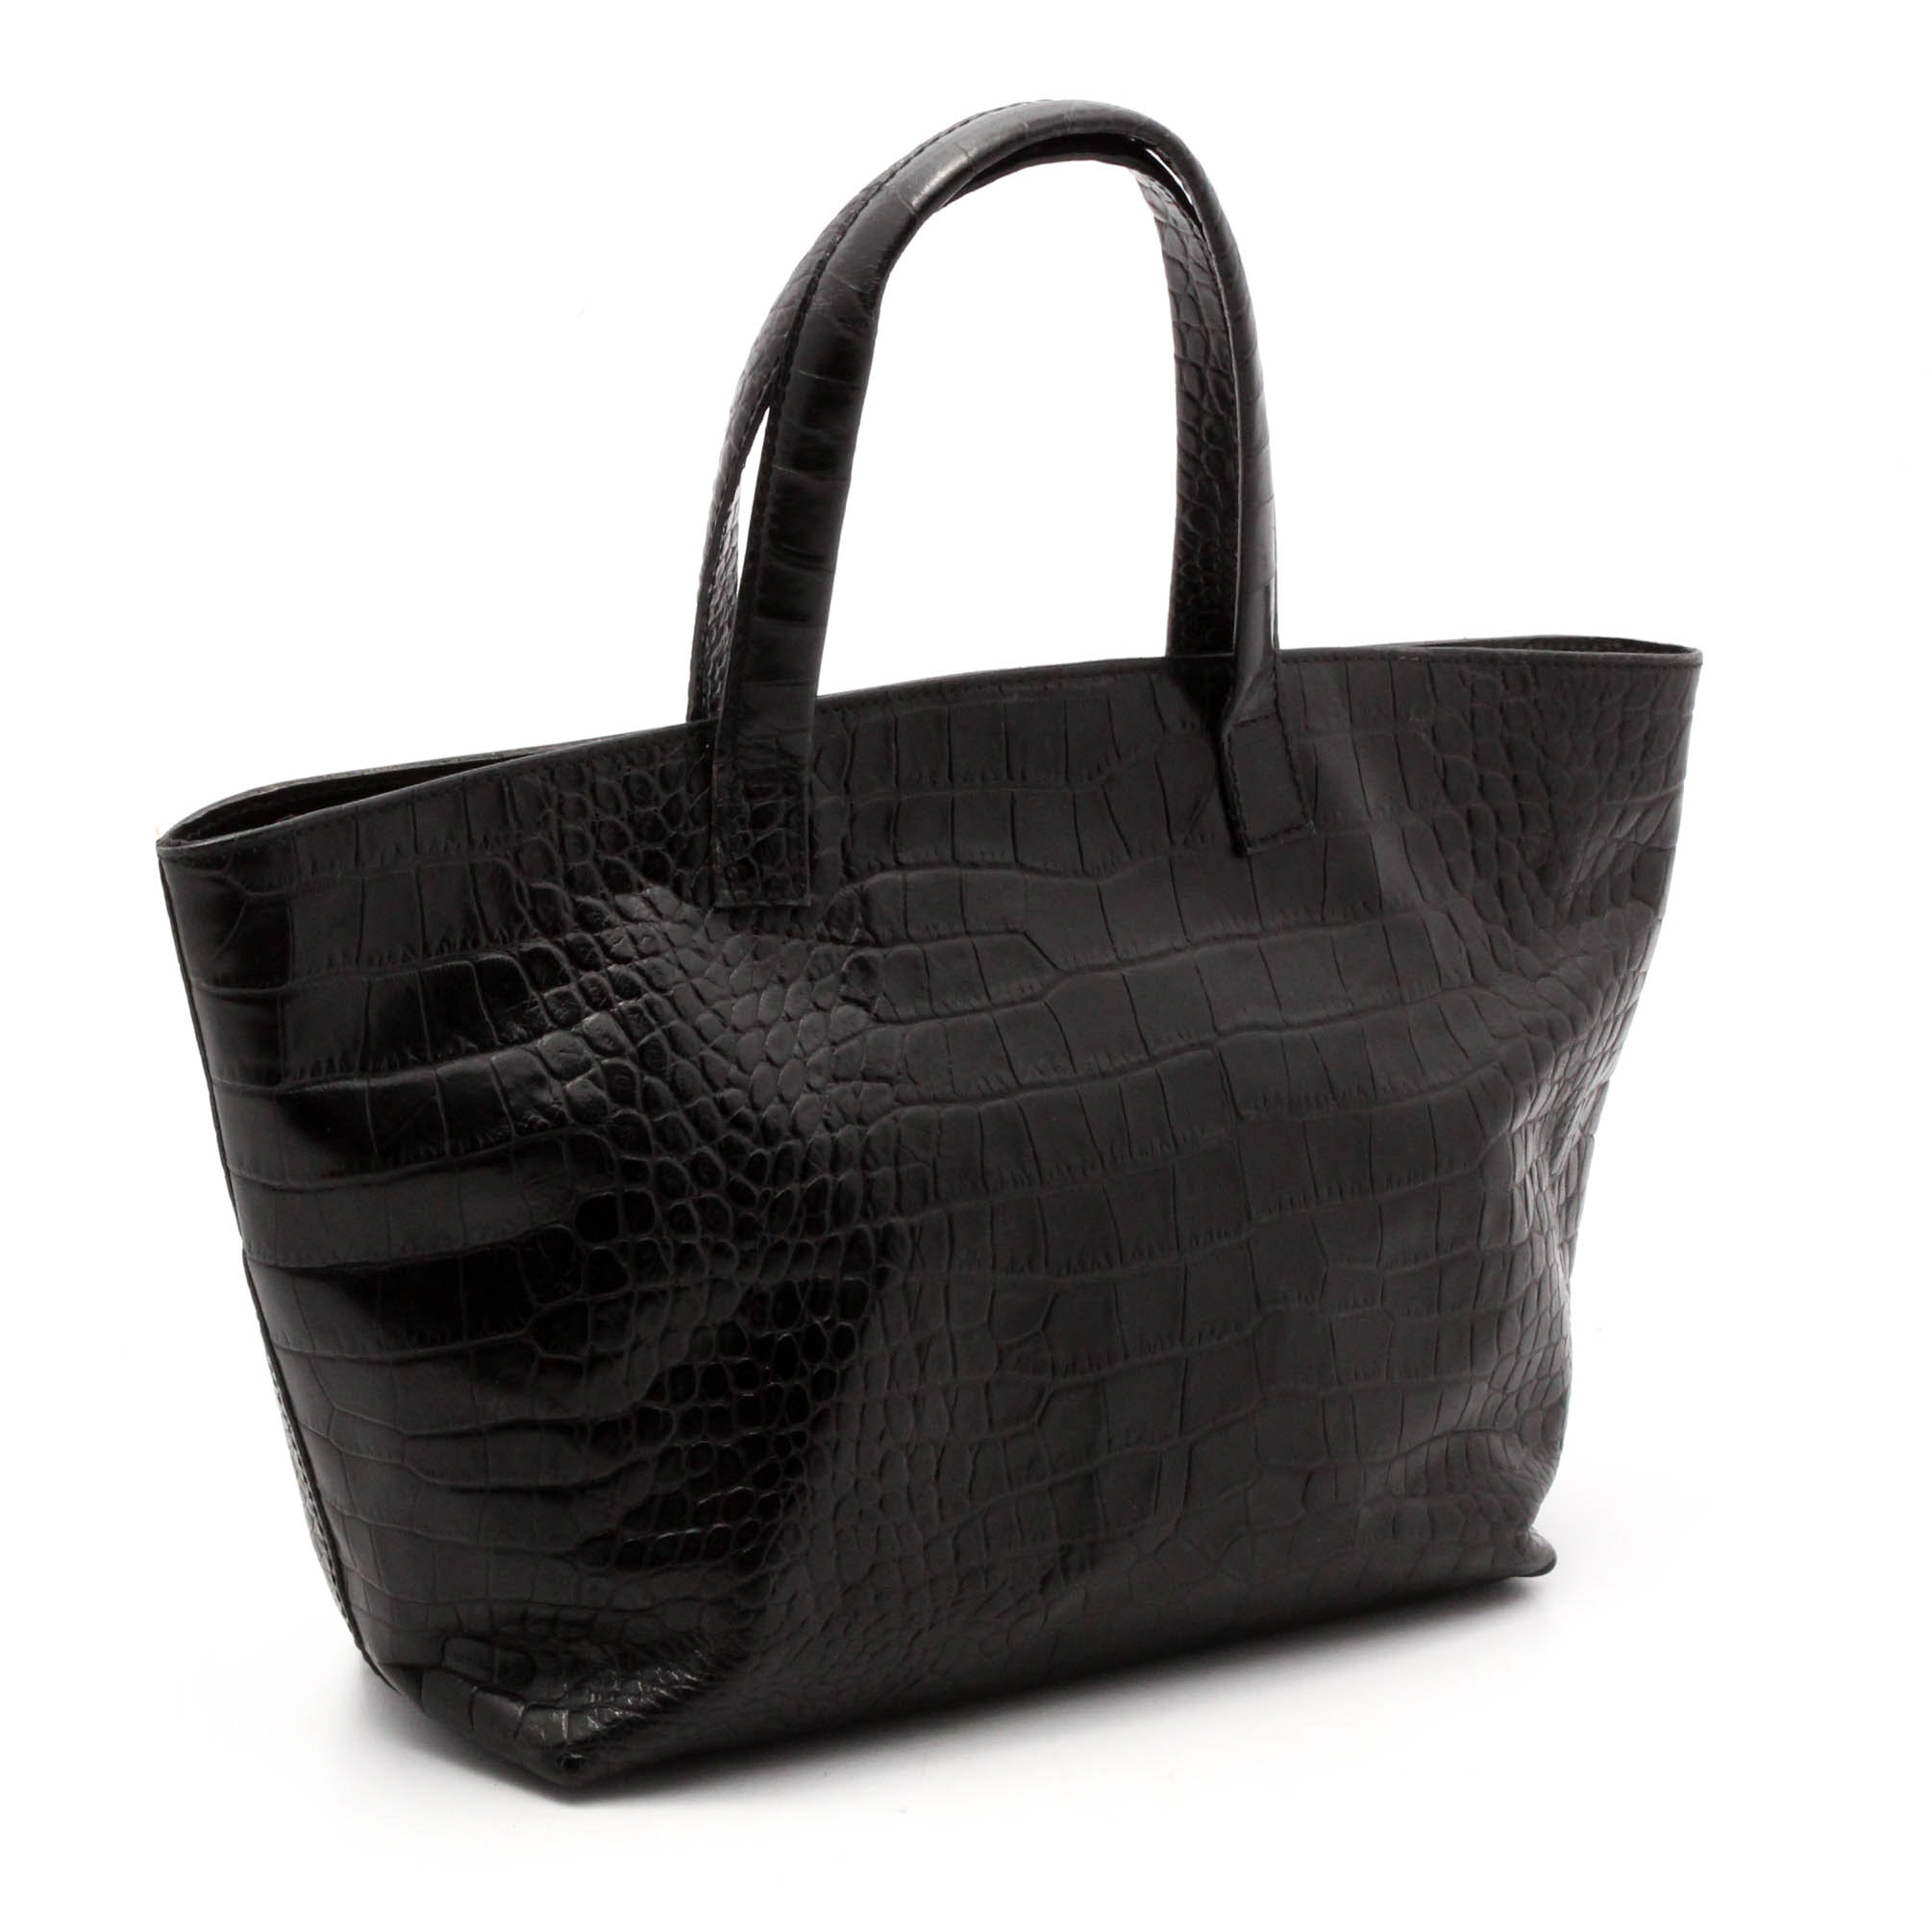 Maurizio Taiuti Crocodile Embossed Black Leather Tote, Made in Italy